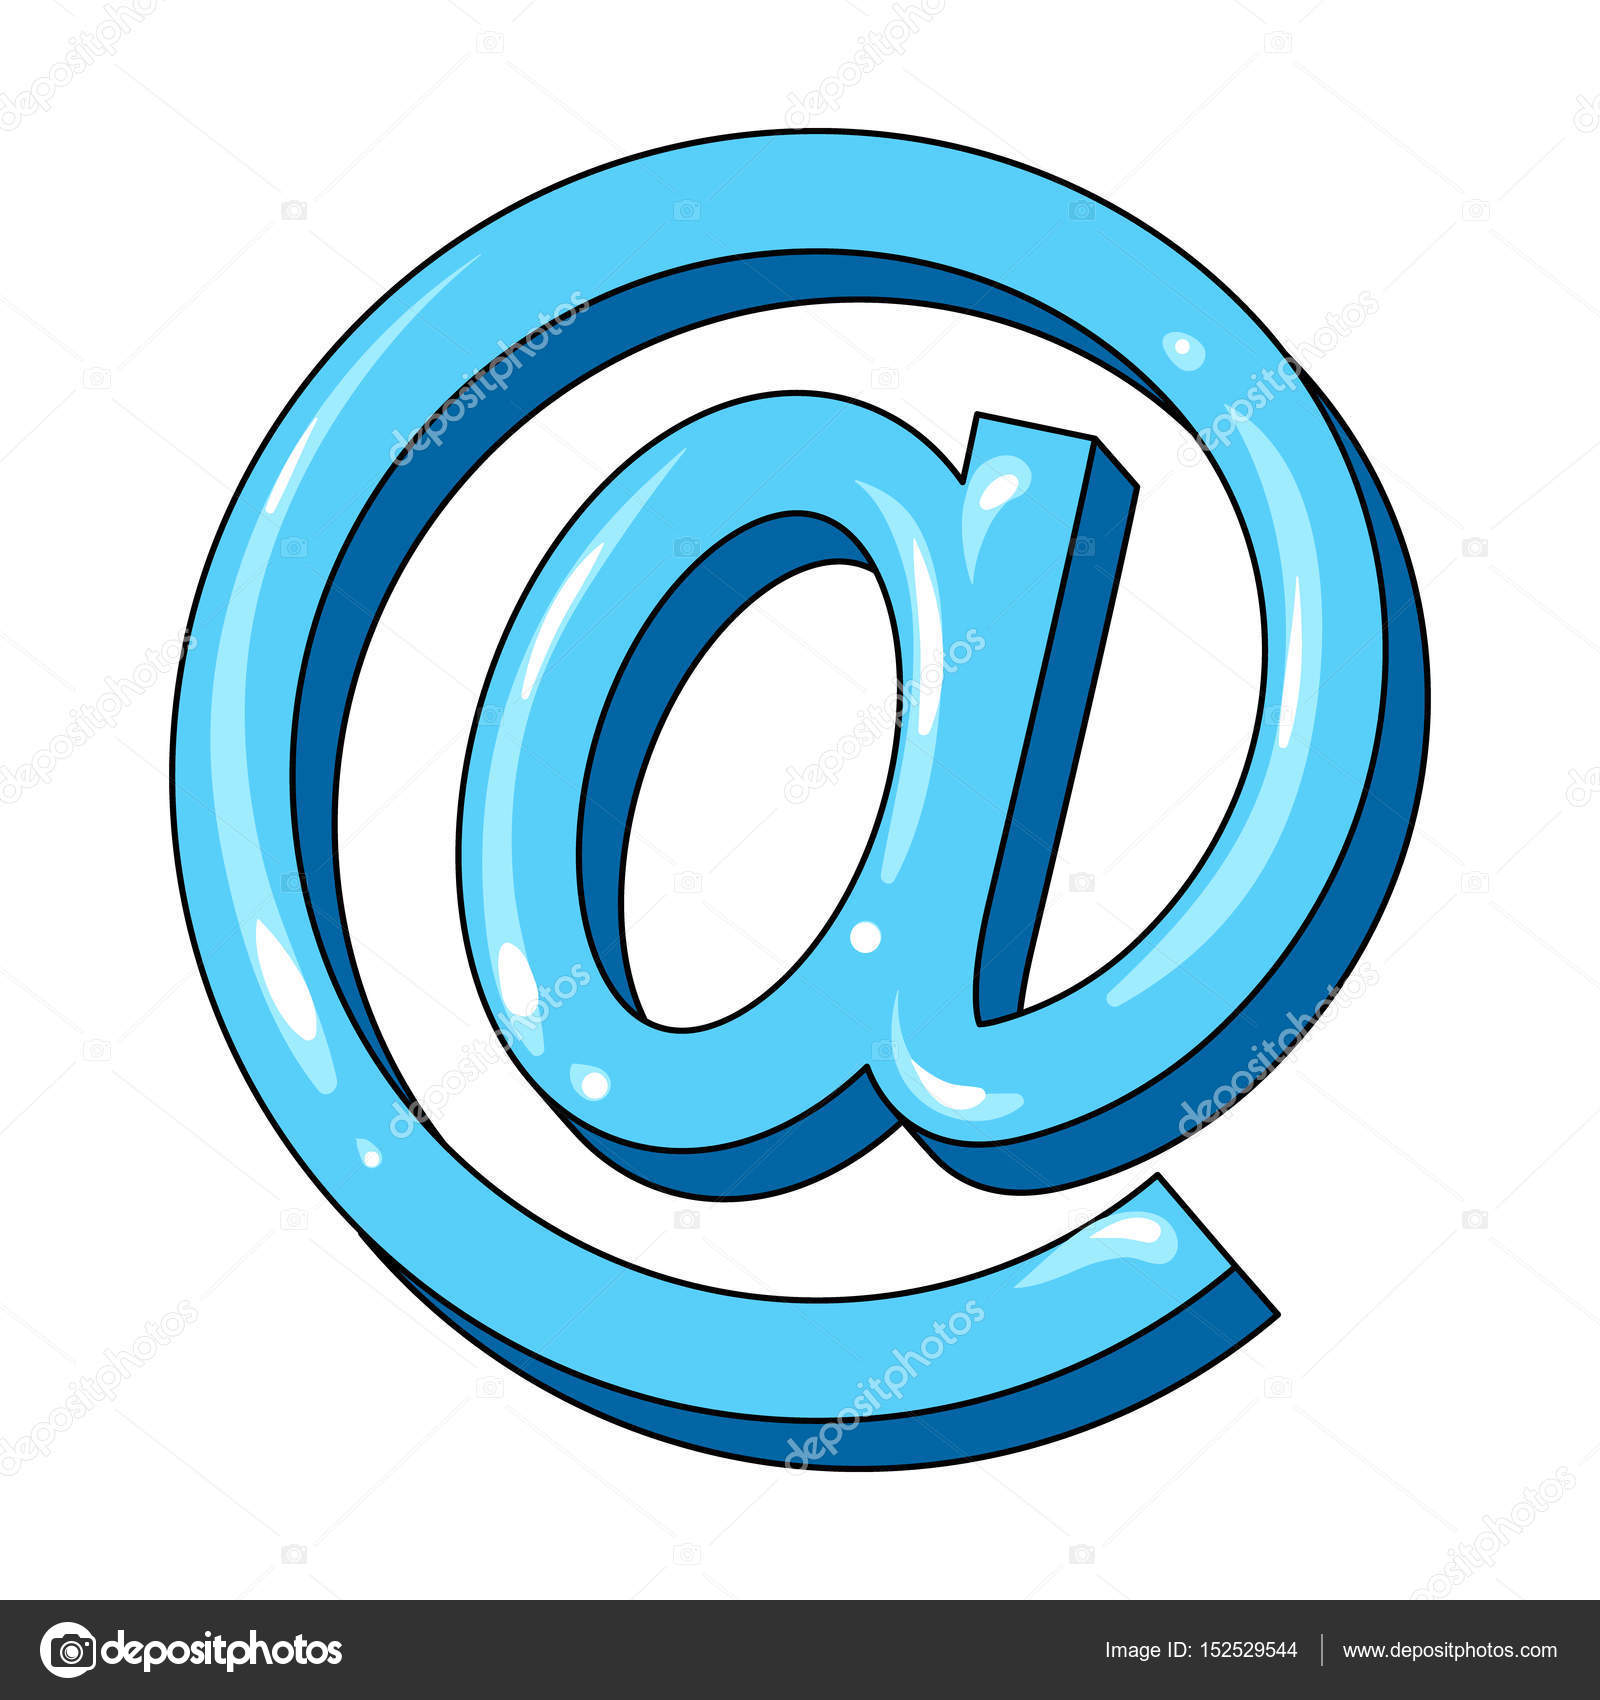 Mail clipart mail symbol. Email and postman single